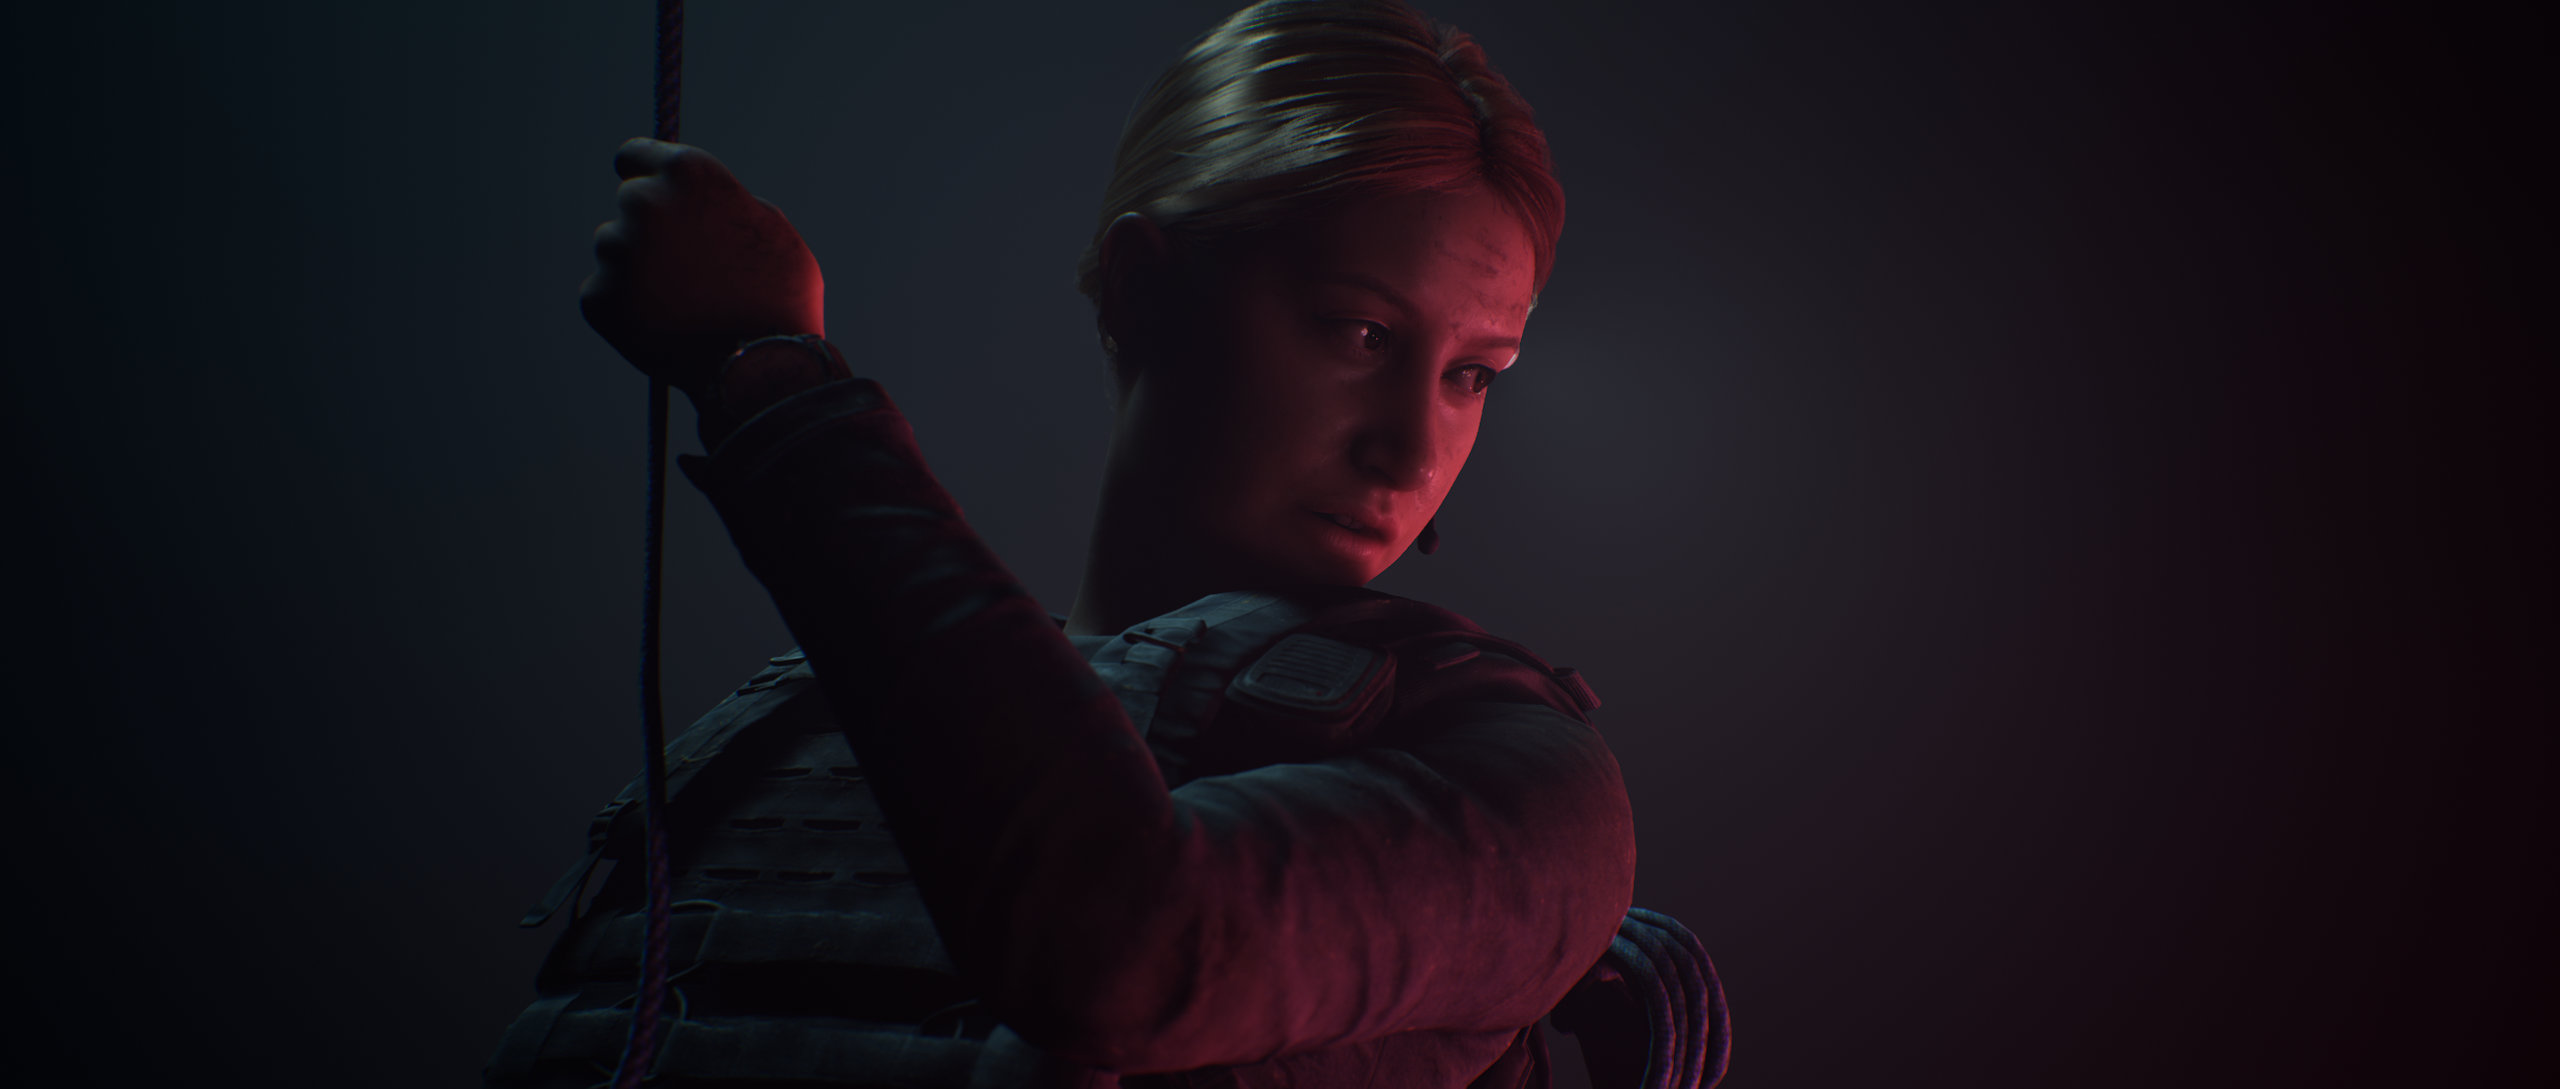 The Dark Pictures Anthology House of Ashes Screenshot of a woman in tactical gear descending a rope into darkness, dimly lit from one side.